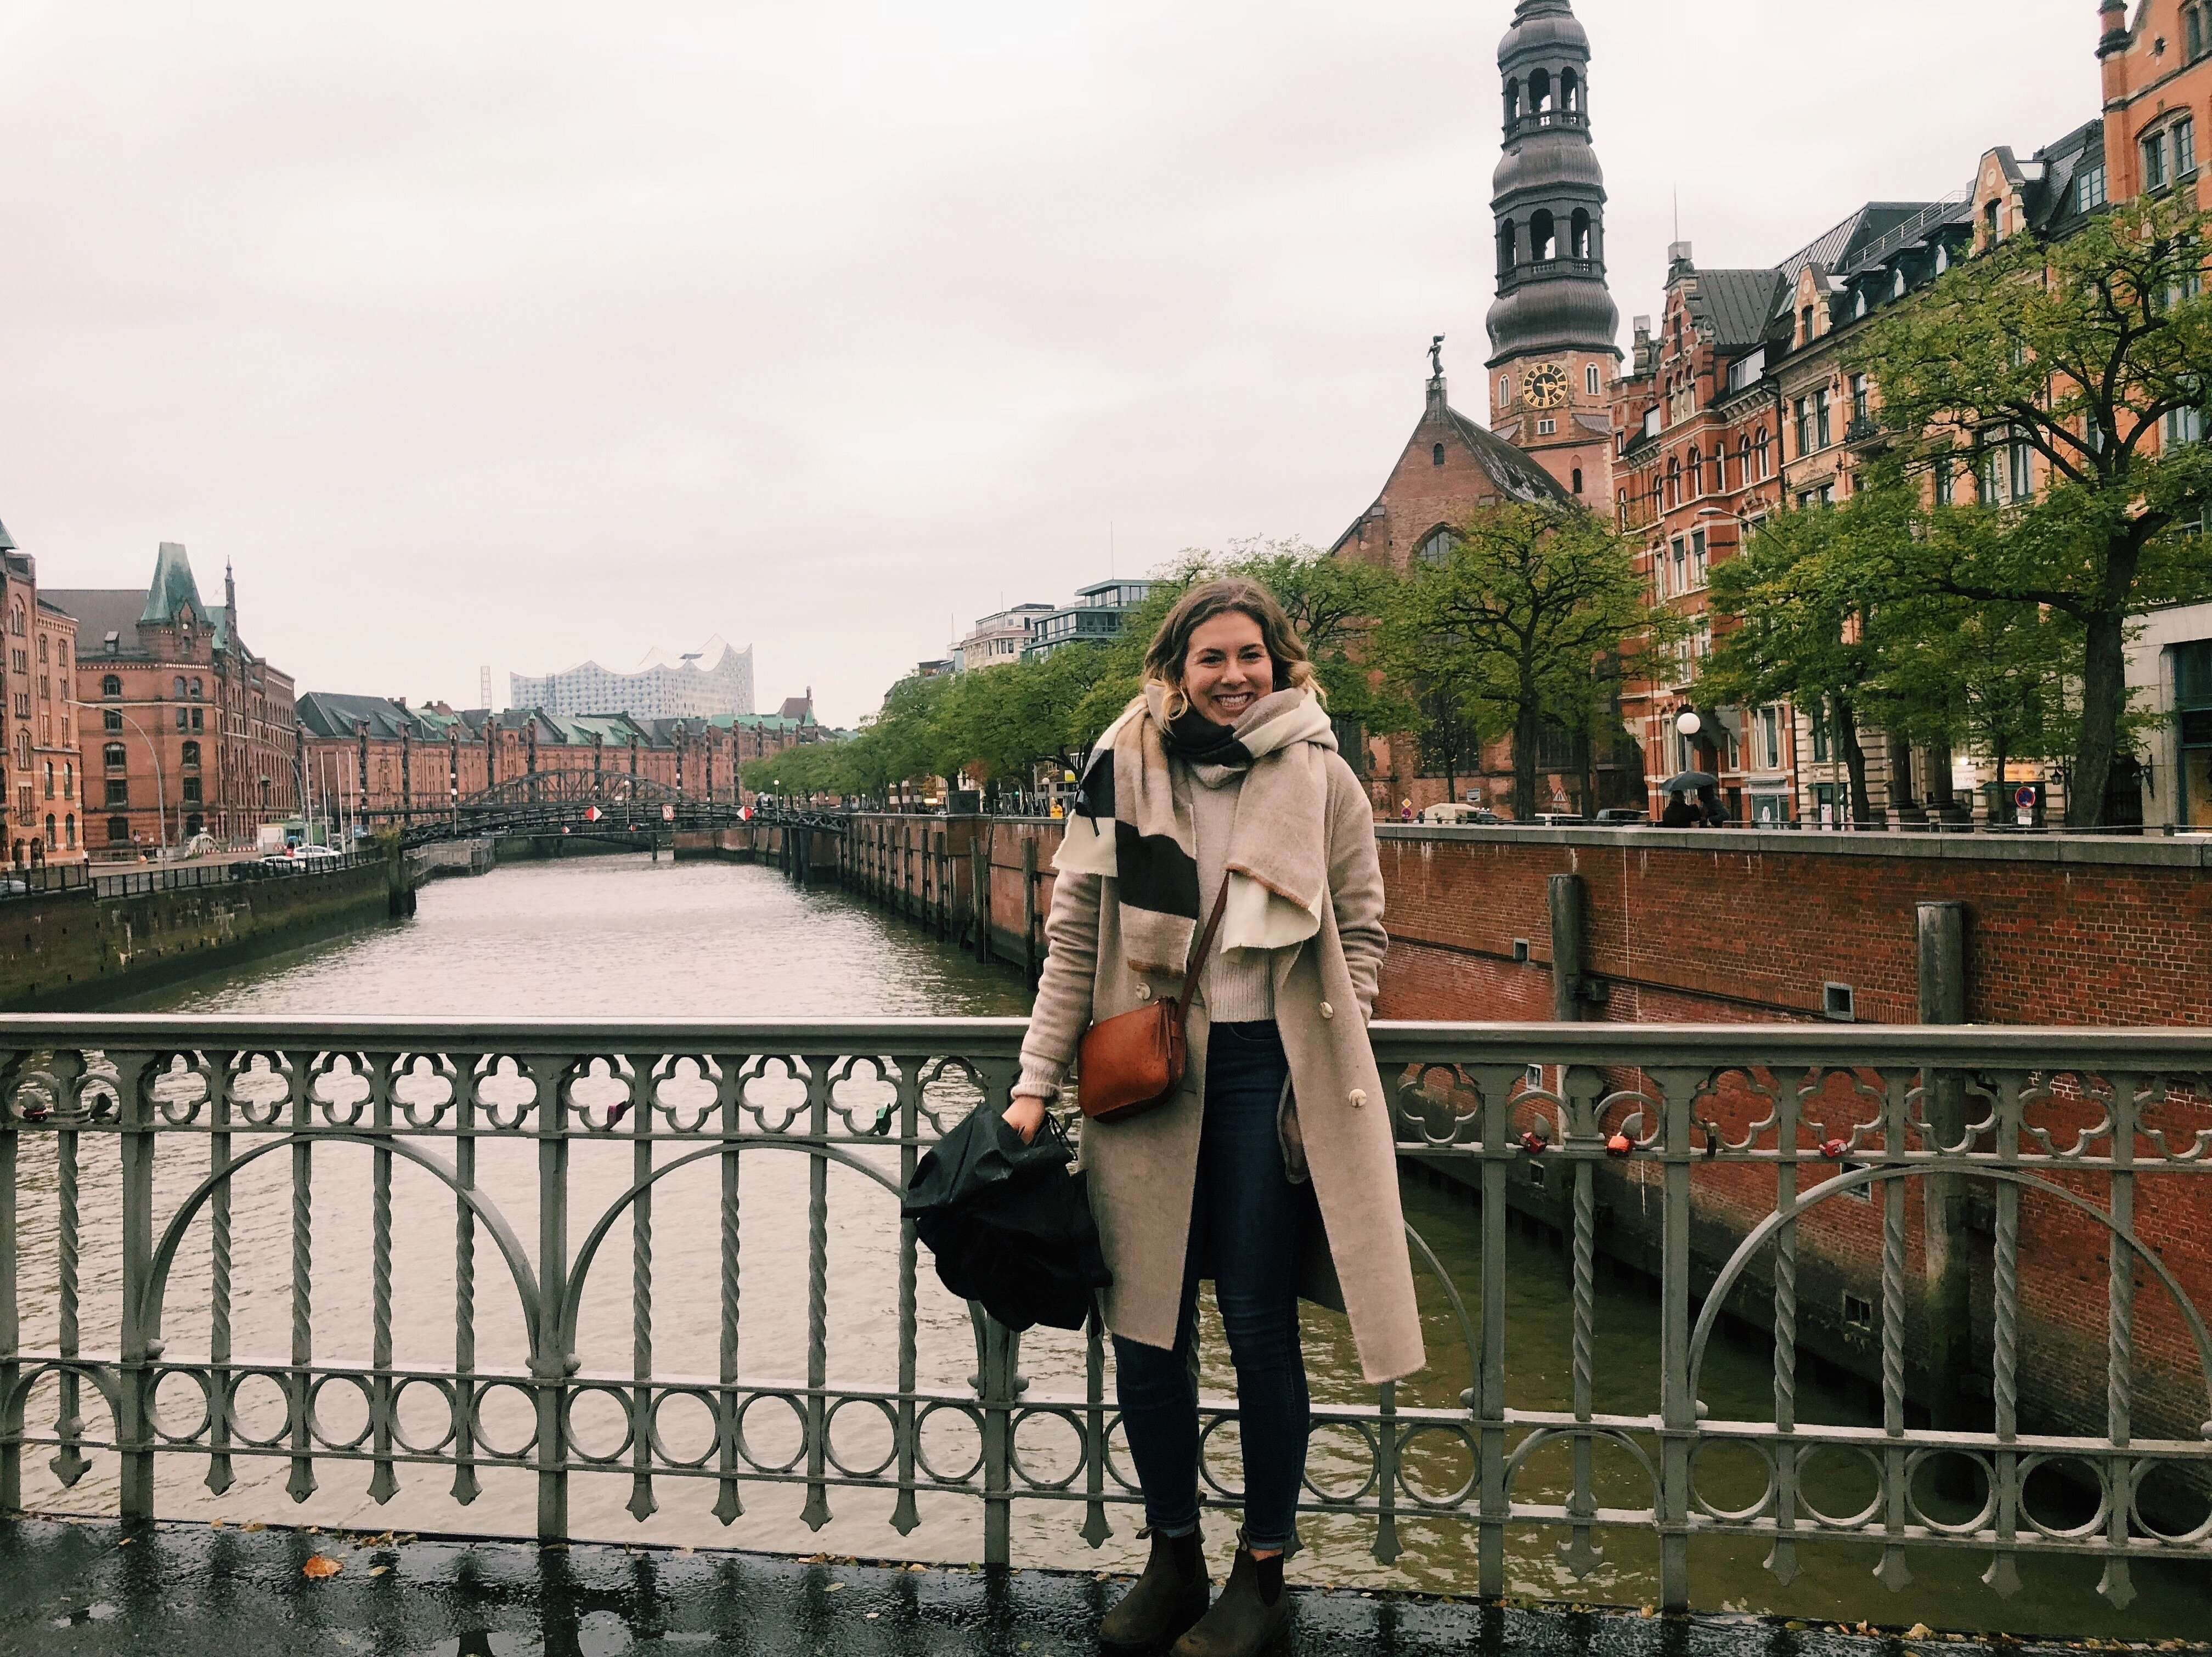 Teaching English in Cologne, Germany - Alumni Q&A with Kristen Bryk